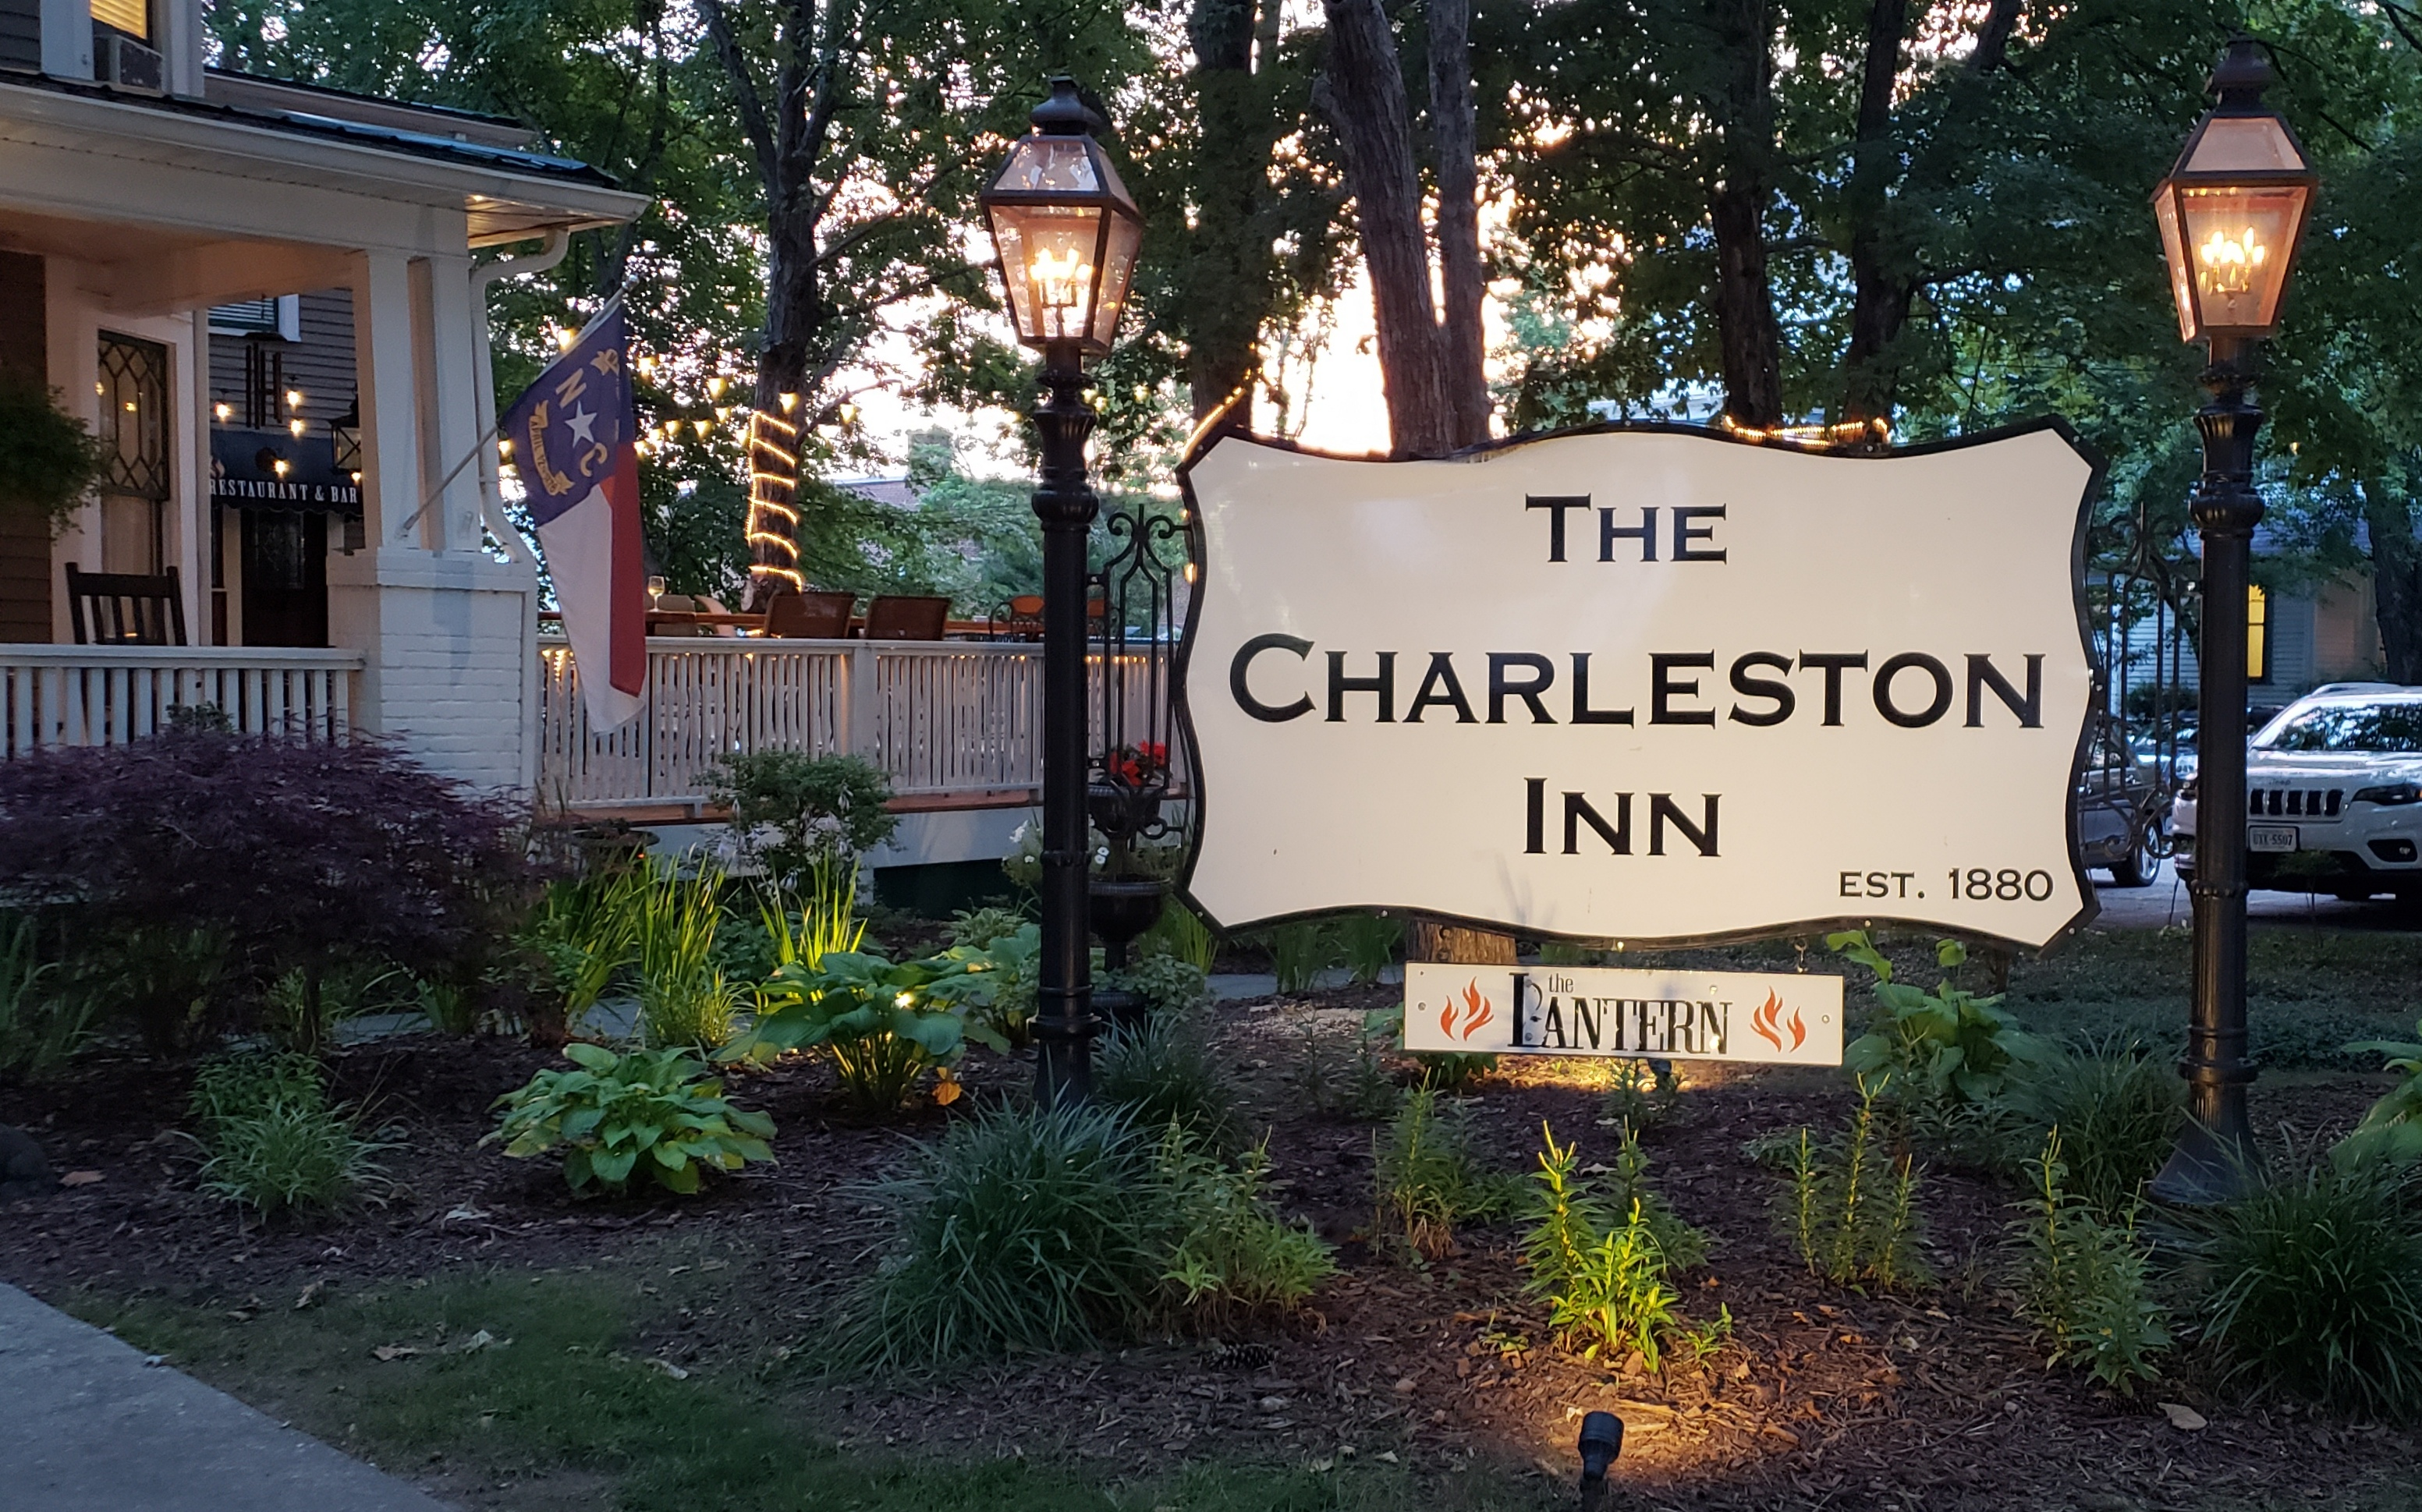 Welcome to the Charleston Inn in Hendersonville, North Carolina!